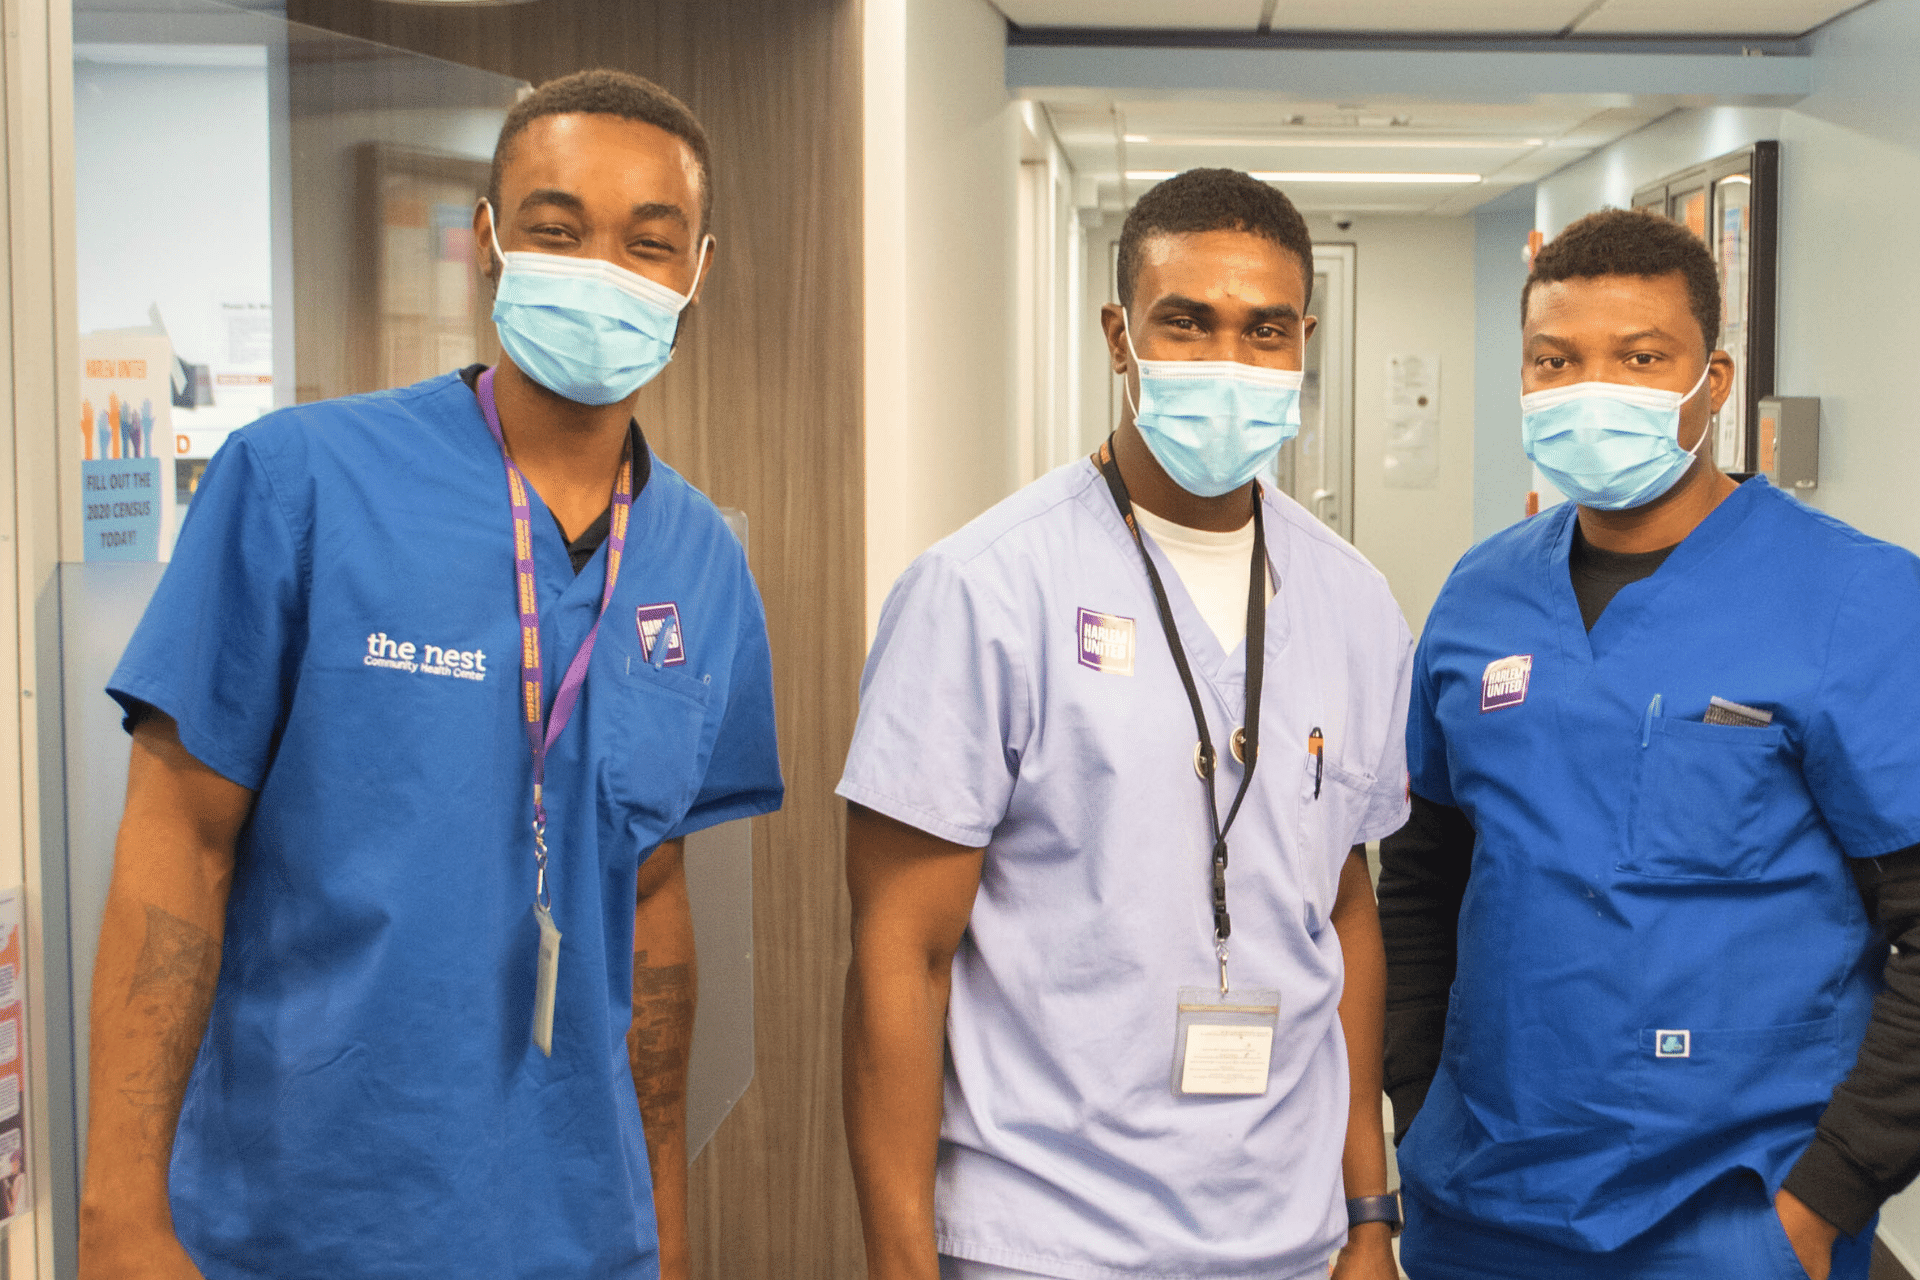 Healthcare workers posing in clinic, wearing masks